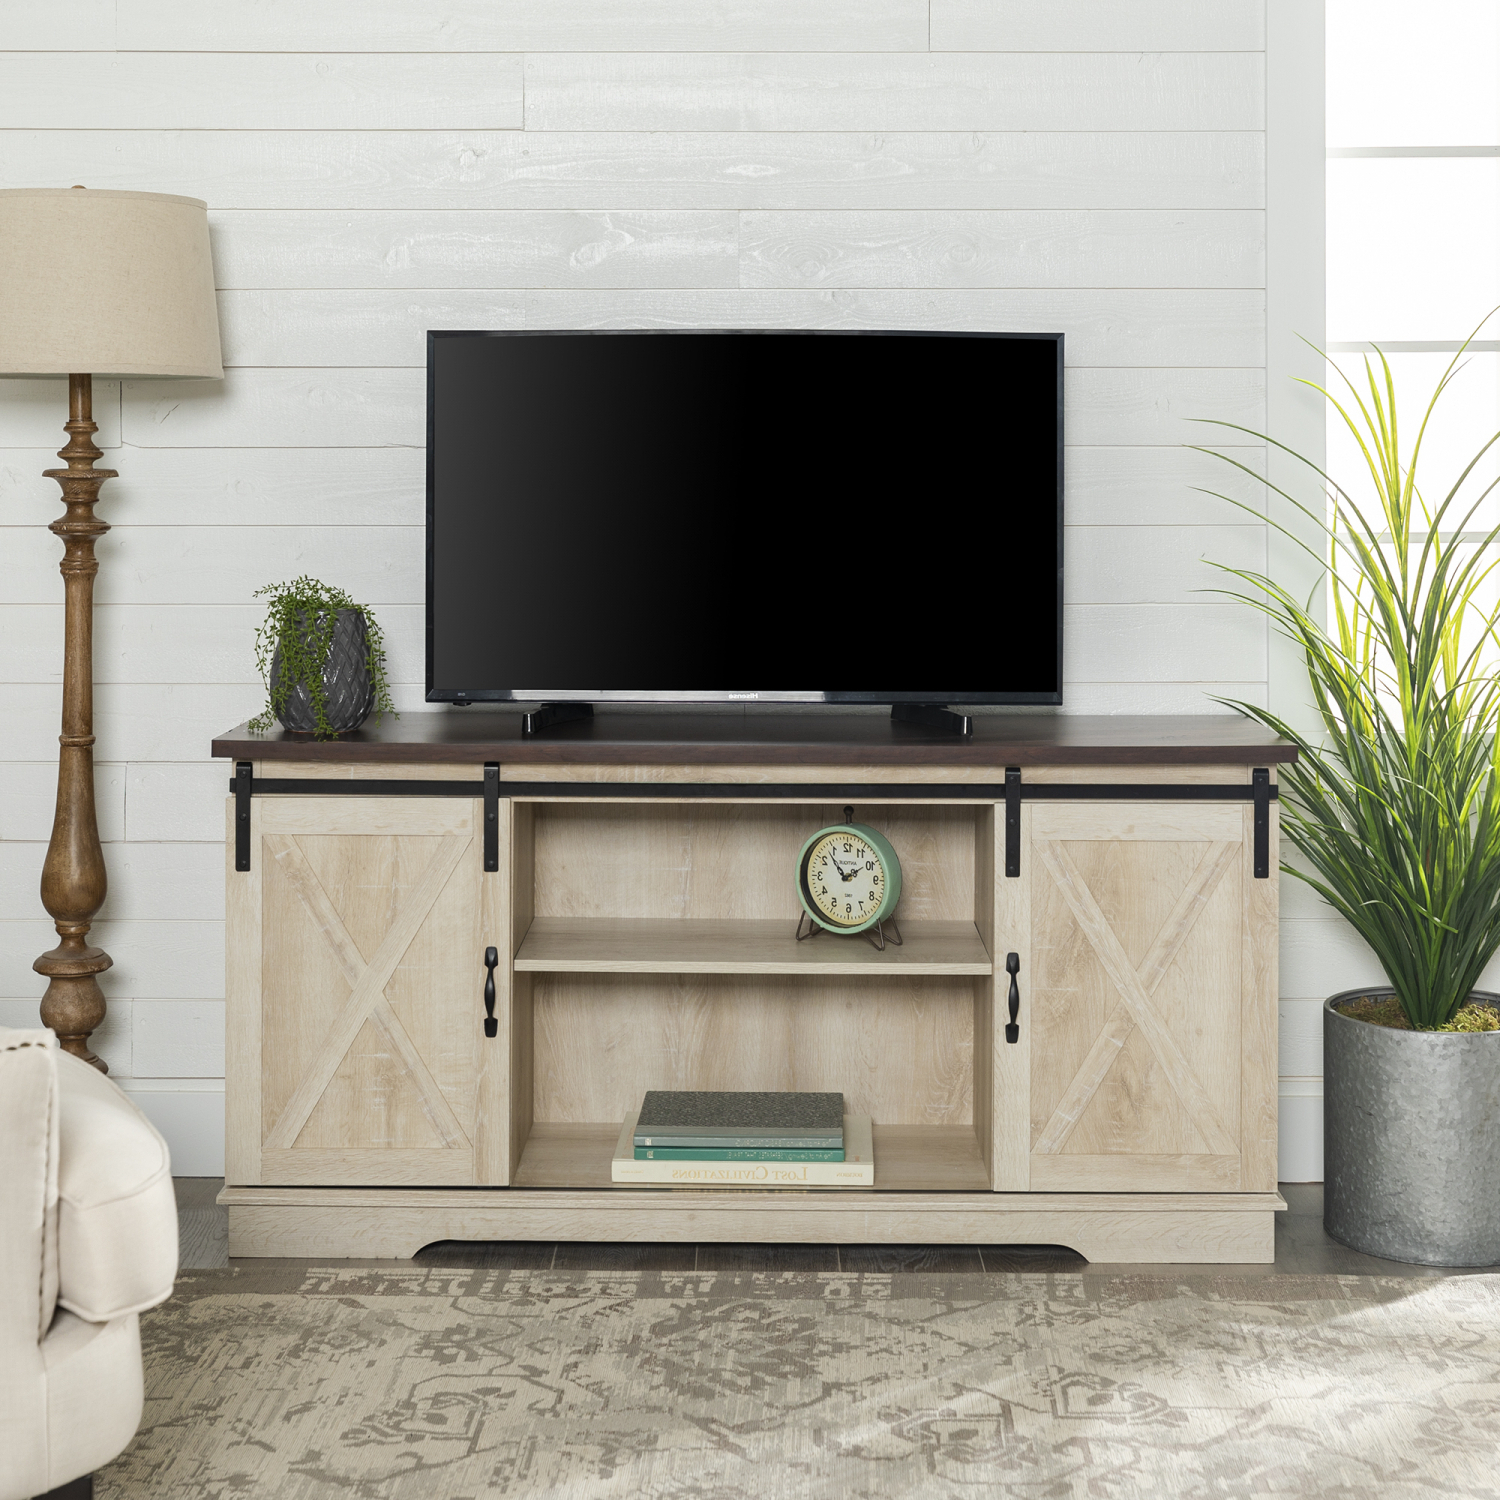 """Manor Park Barn Door Tv Stand For Tvs Up To 65 In For Modern Farmhouse Style 58"""" Tv Stands With Sliding Barn Door (View 8 of 20)"""